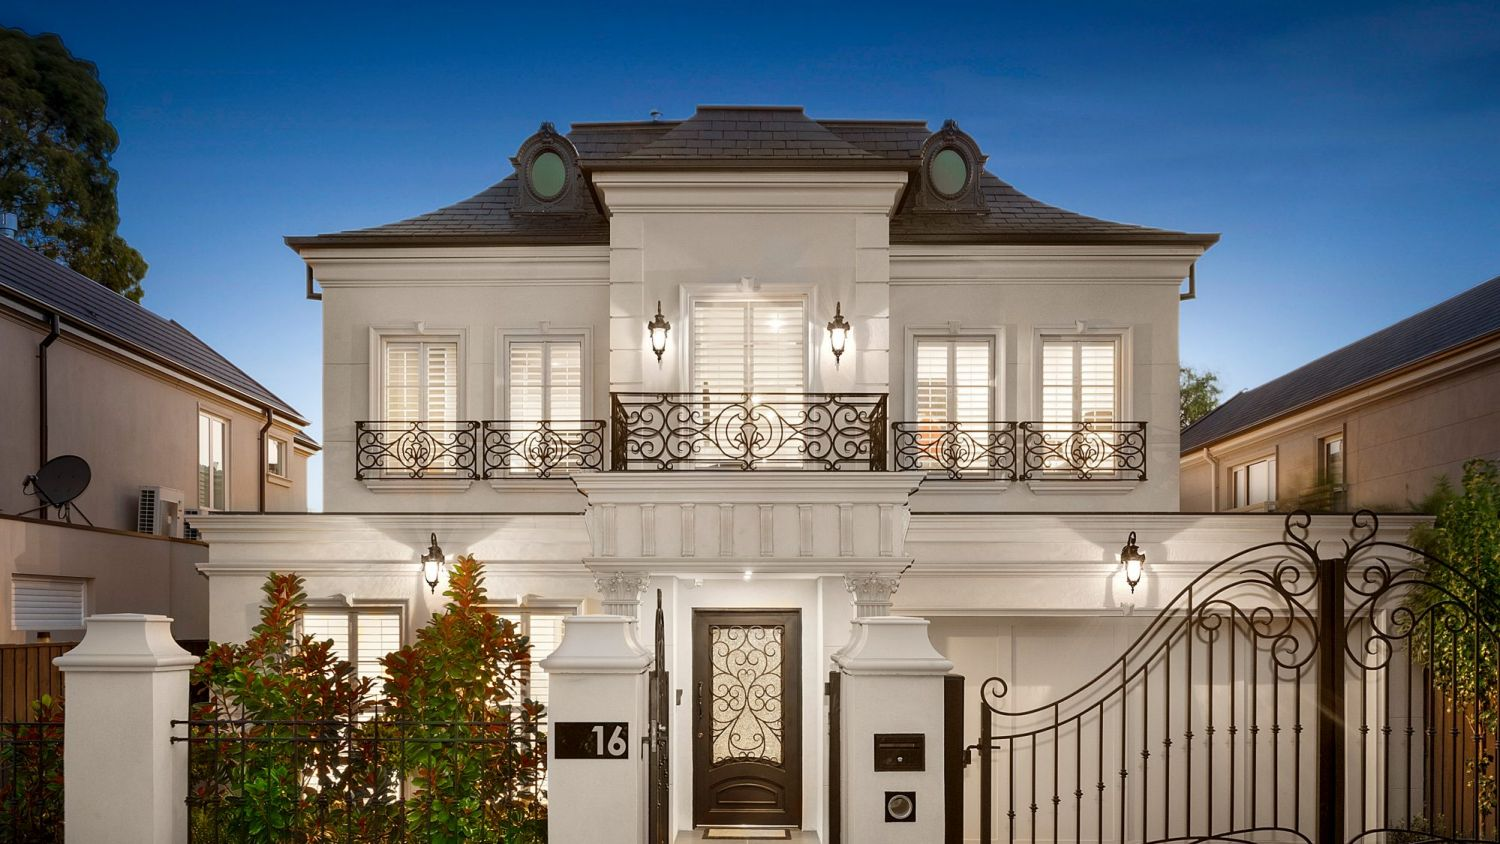 Fullsize Of French Provincial House